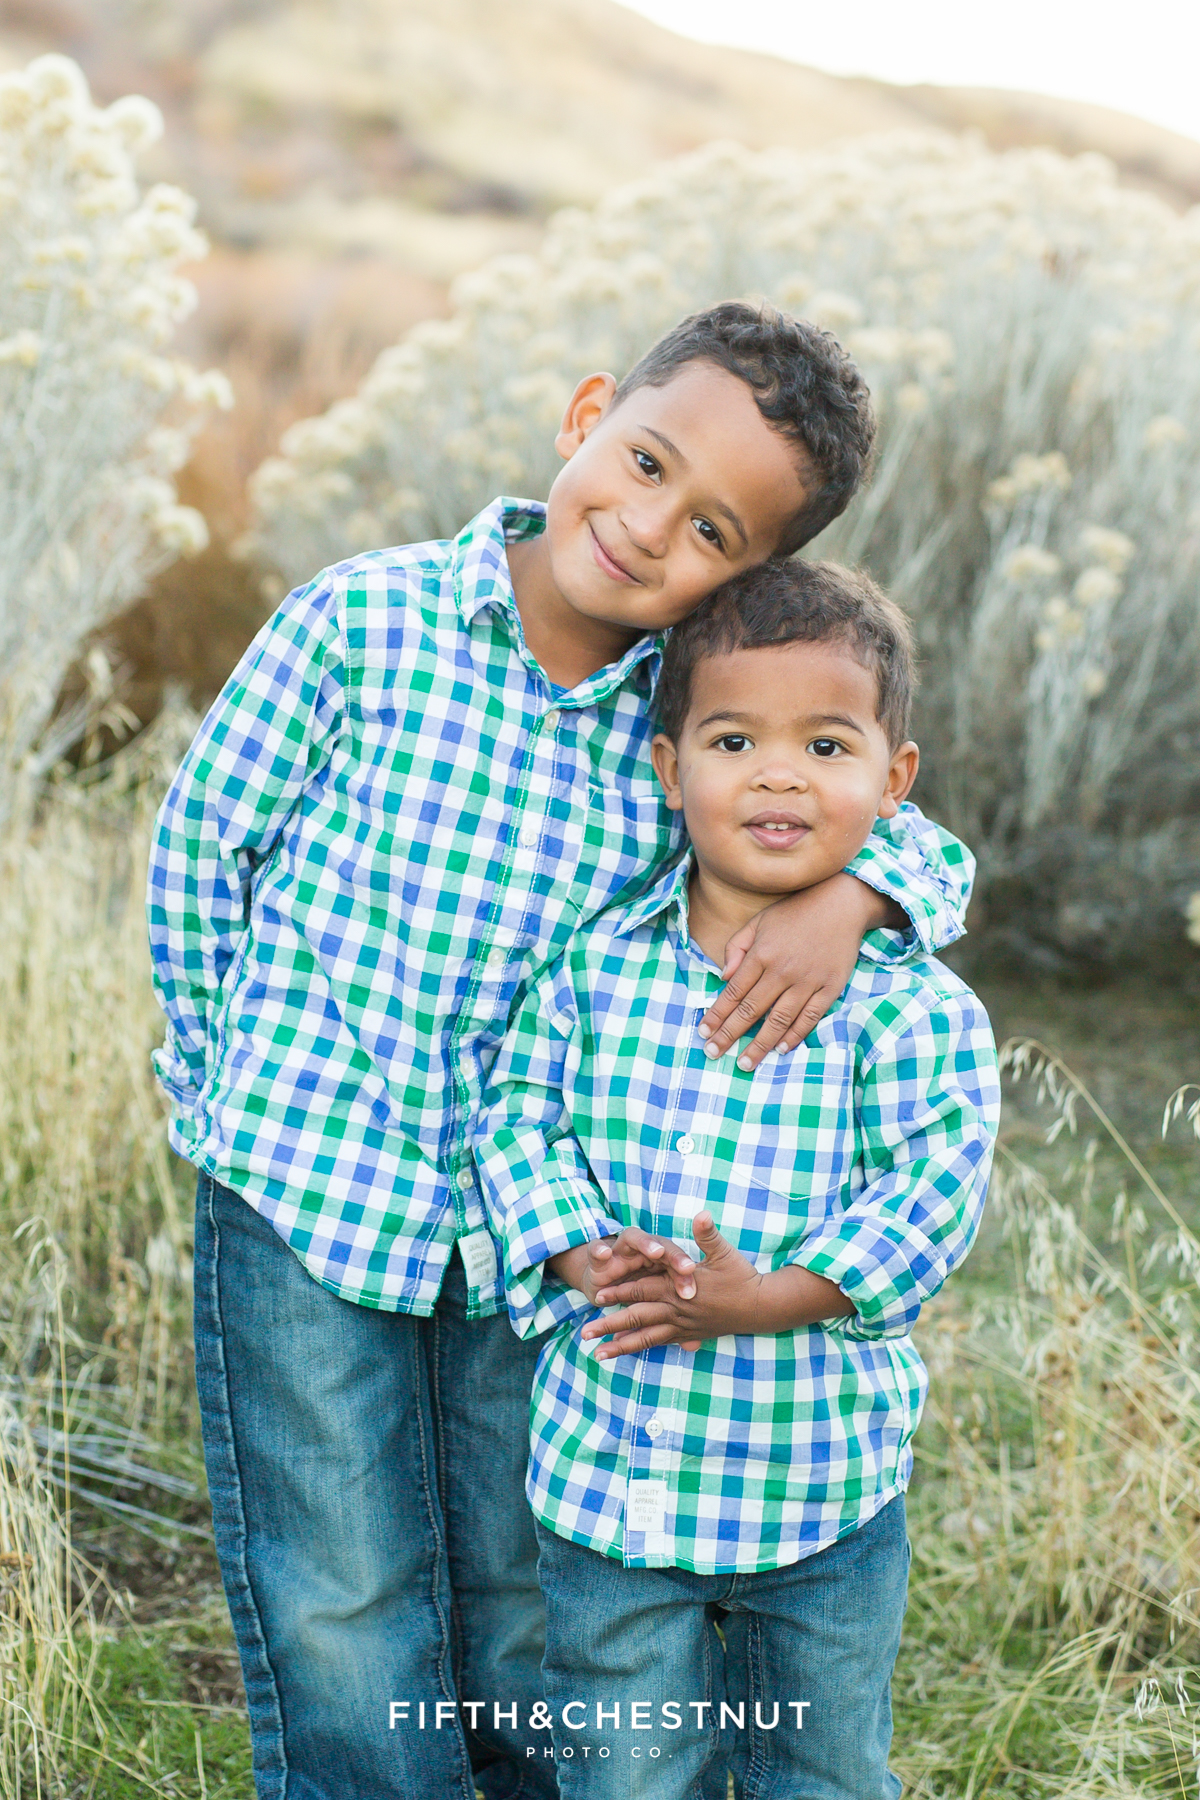 Mayberry Park Portraits of toddlers dressed in matching plaid shirts